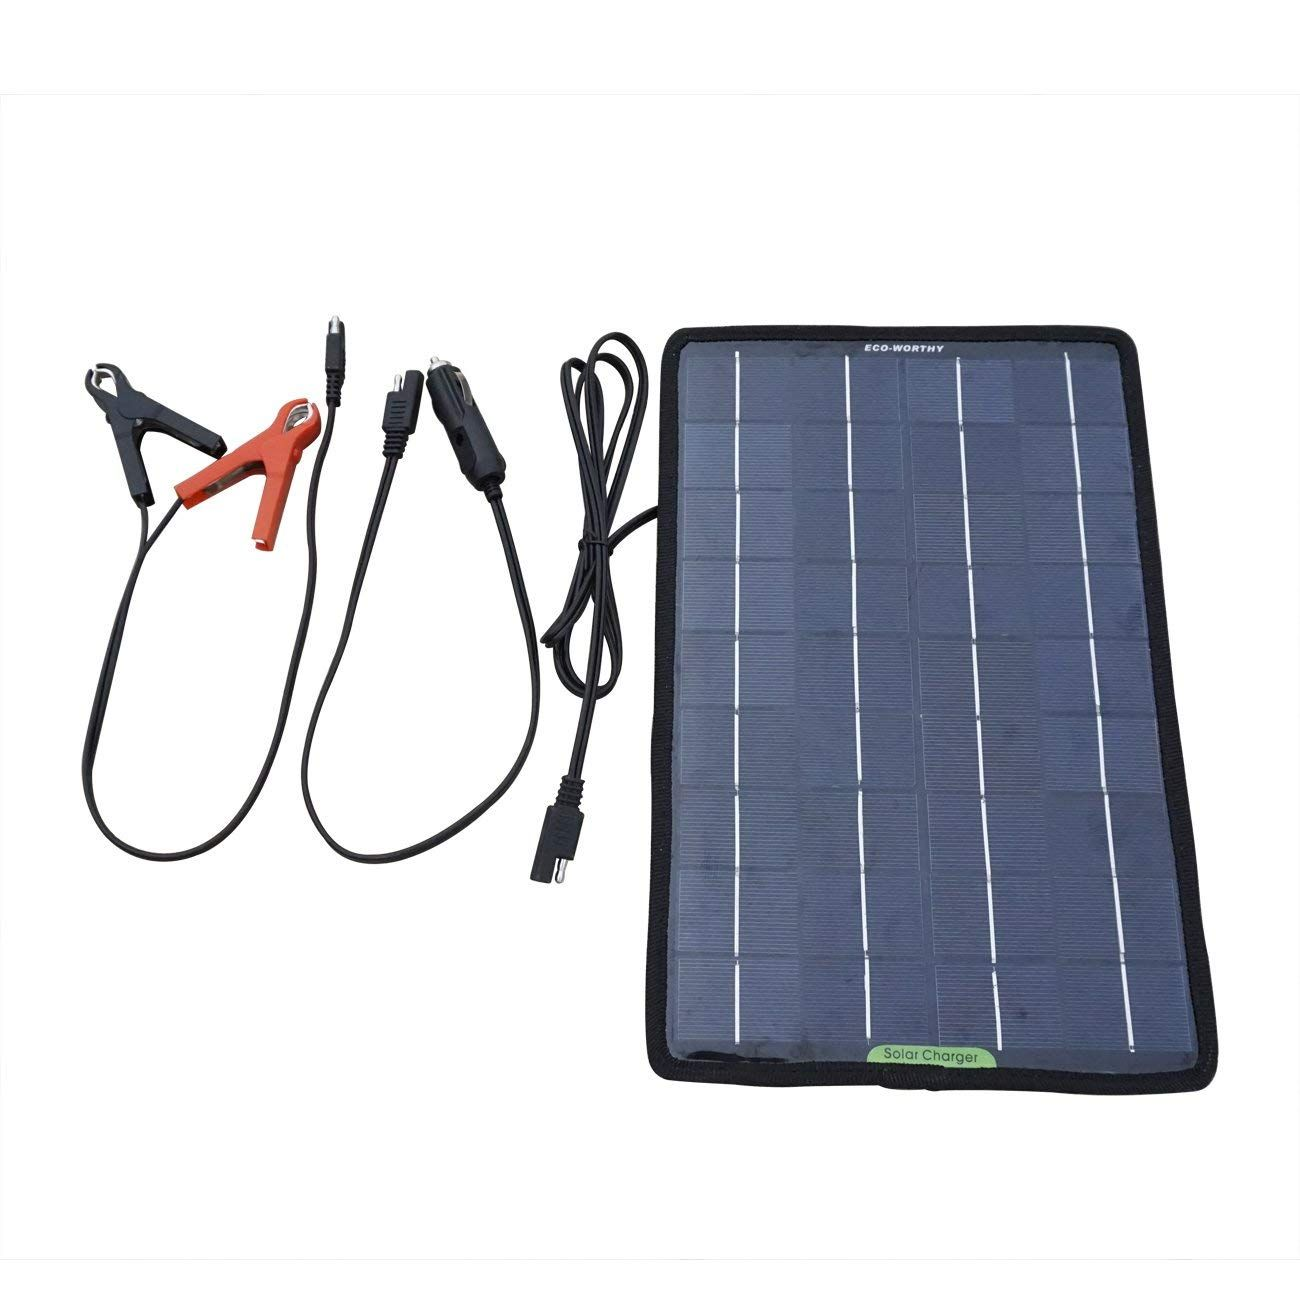 ECOWORTHY 12 Volts 10 Watts Portable Power